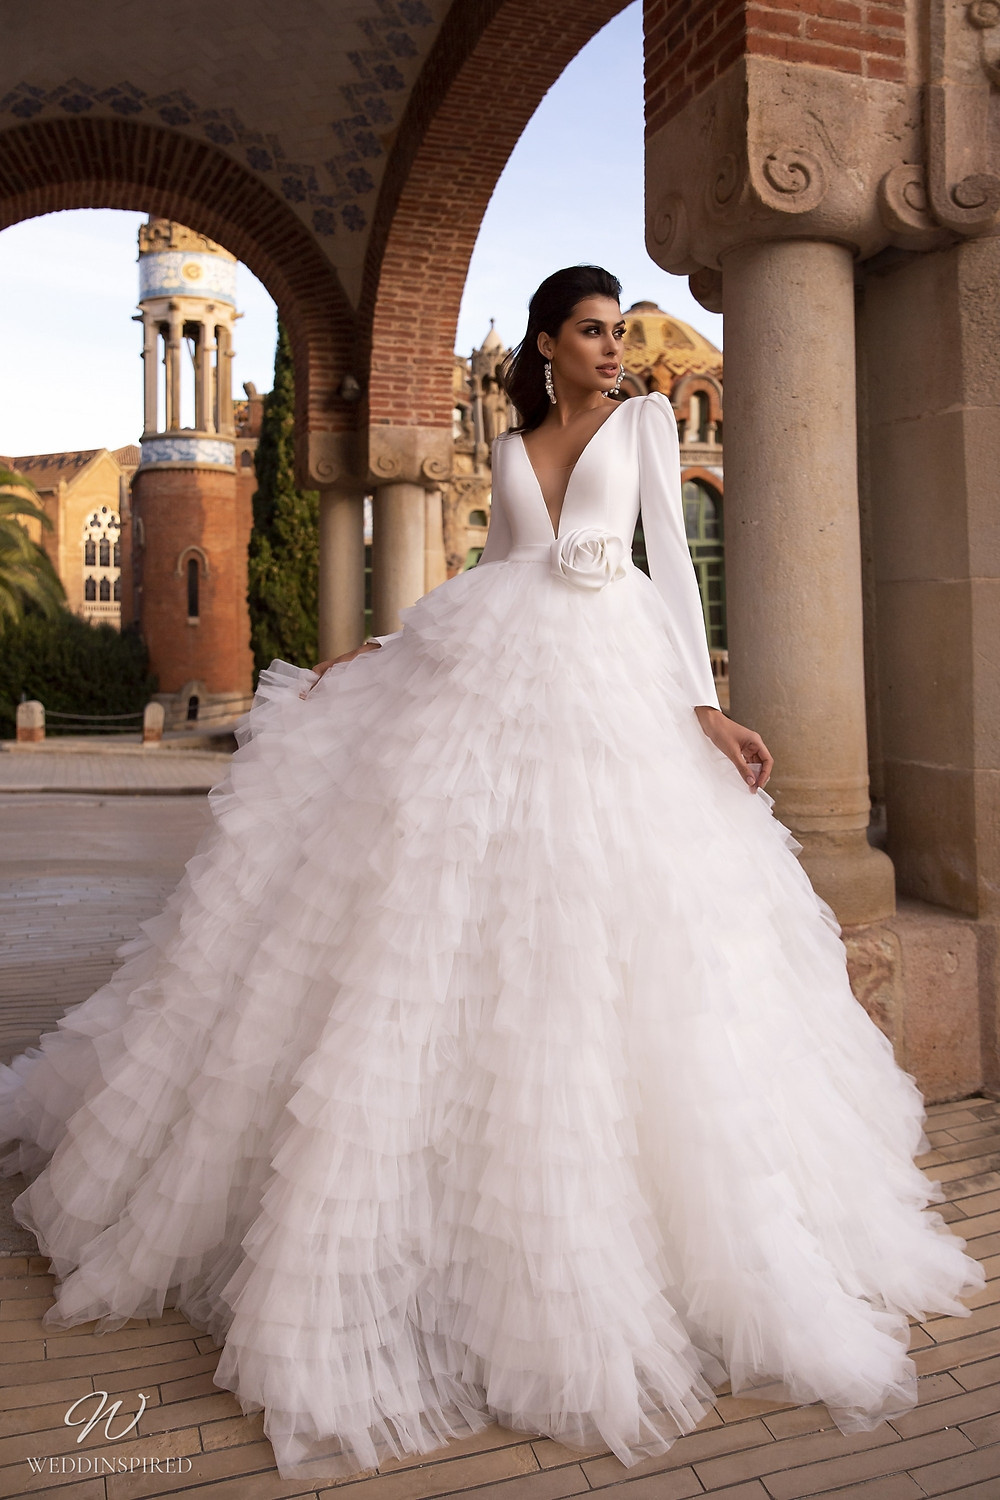 A Maks Mariano ball gown wedding dress with long sleeves and a layered tulle ruffle skirt